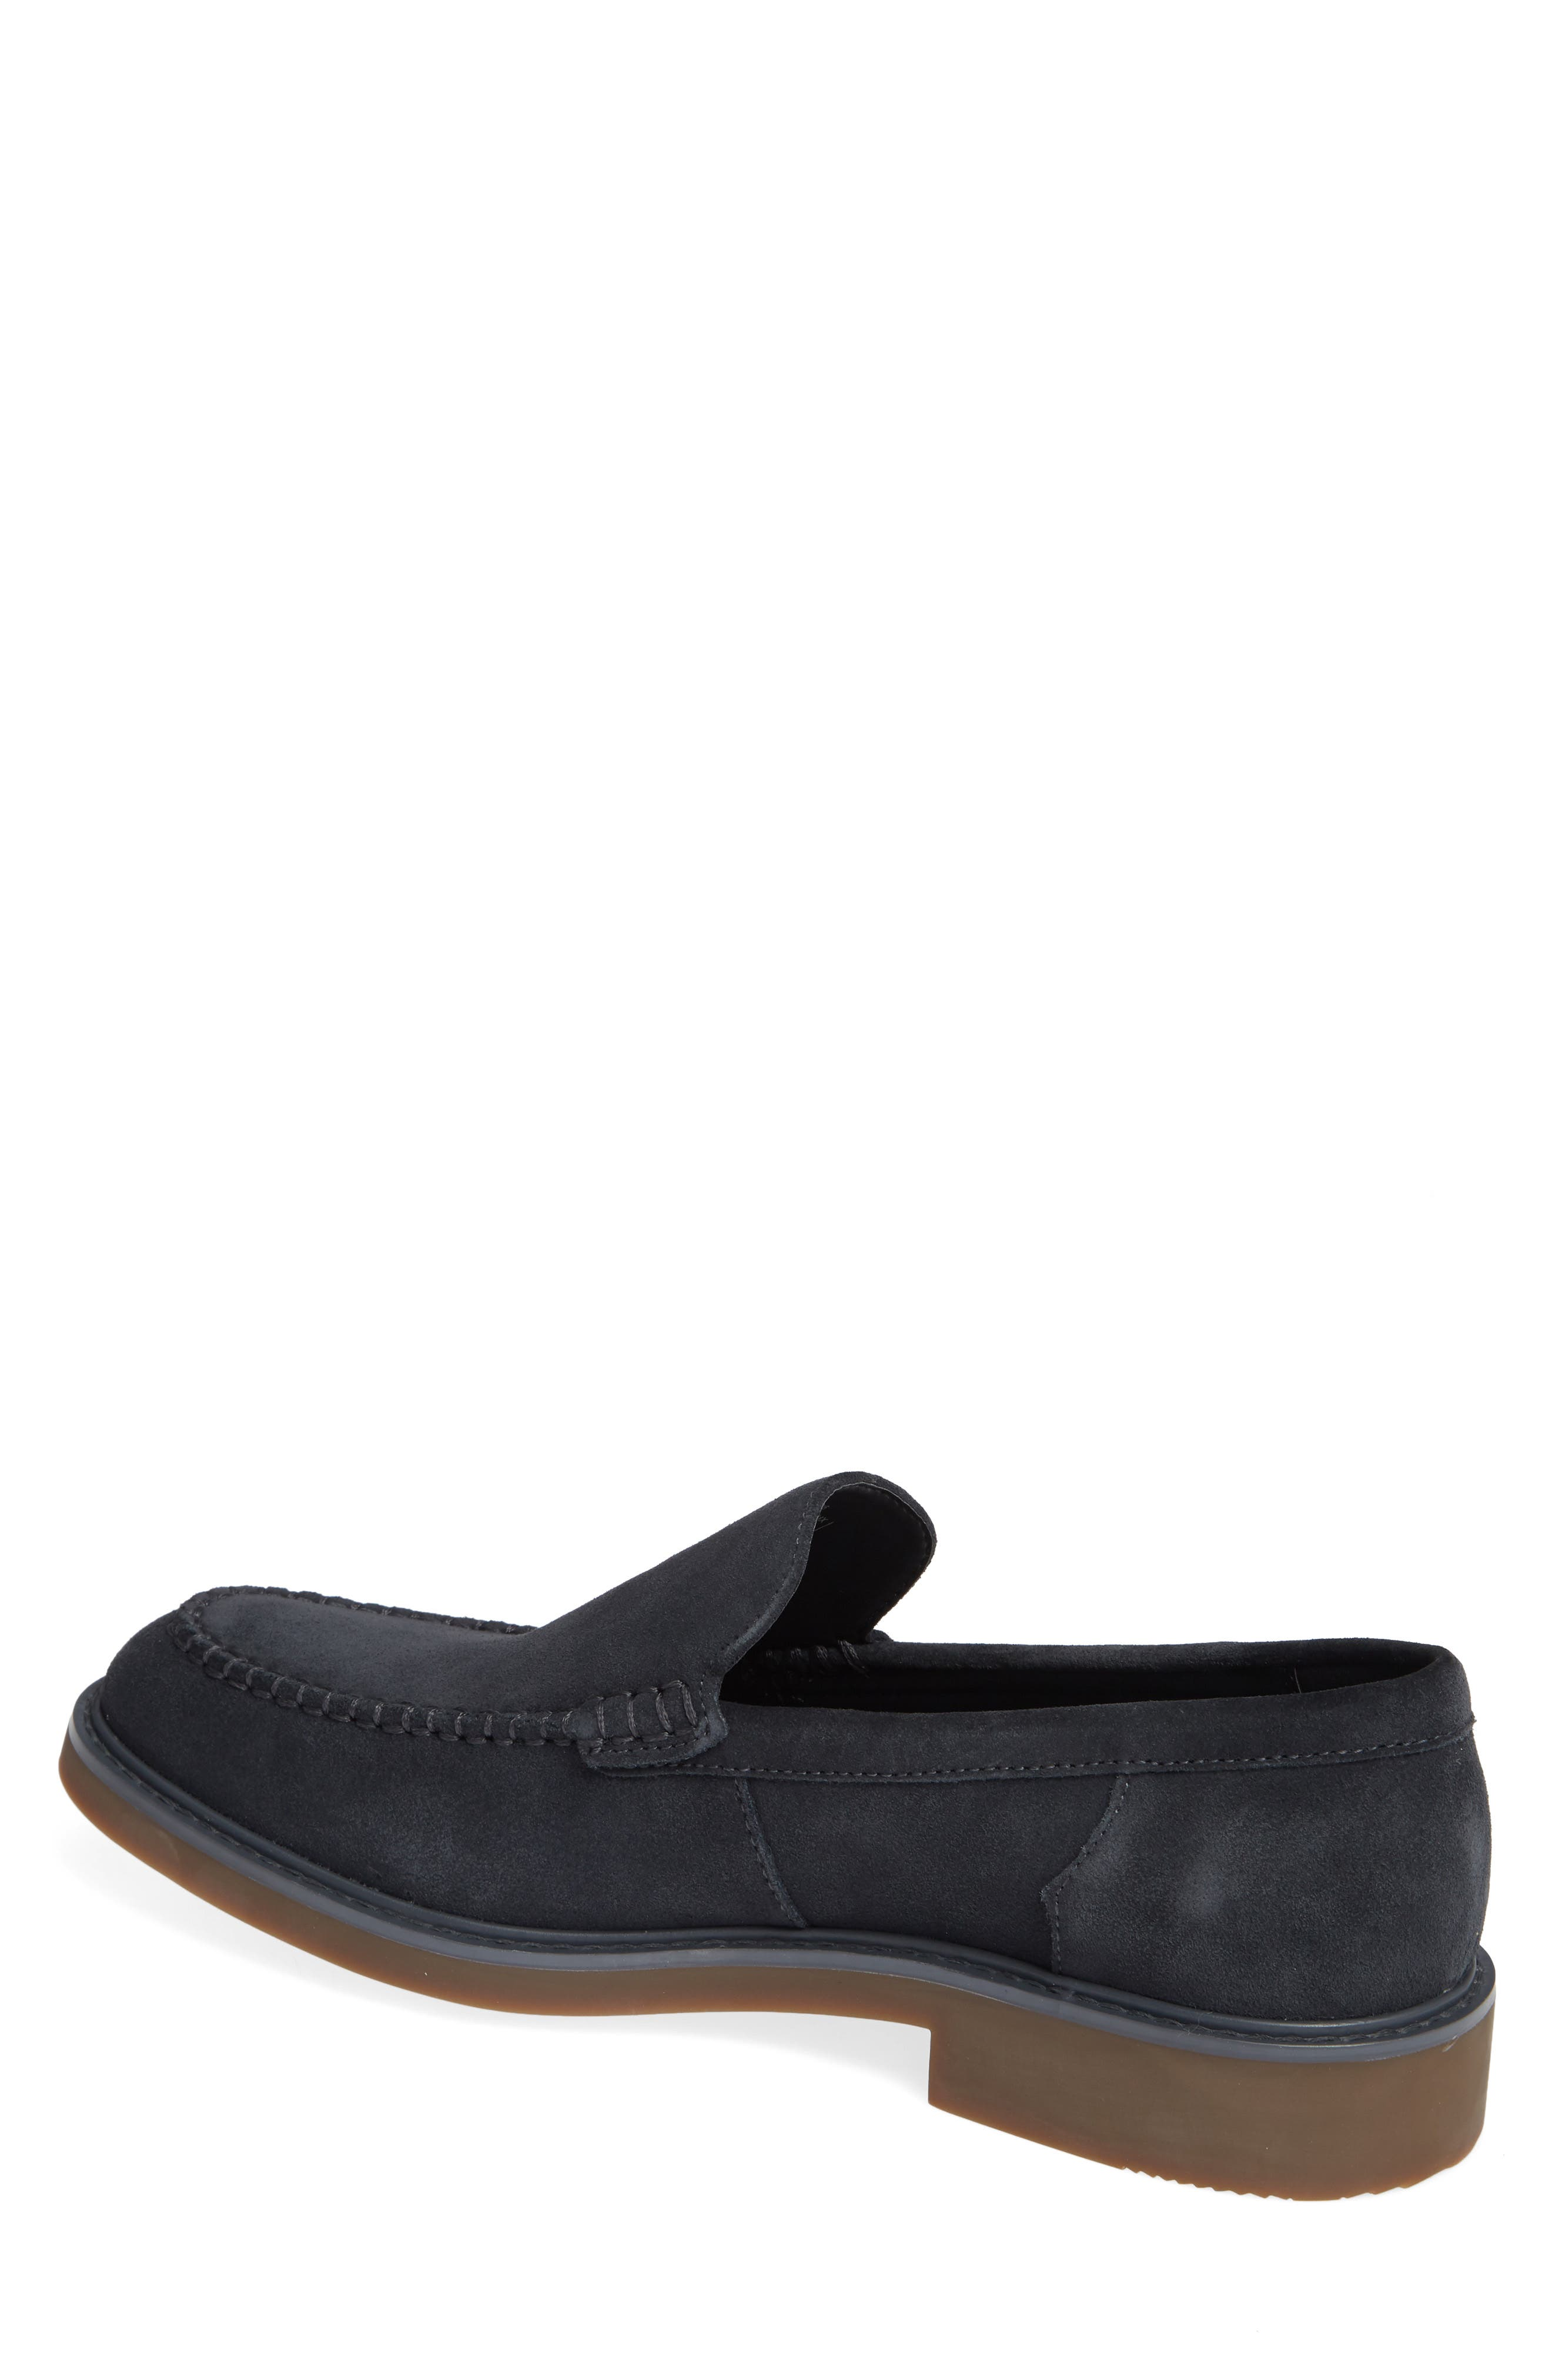 Vance Apron Toe Loafer,                             Alternate thumbnail 2, color,                             STEEL GREYSTONE CALF SUEDE